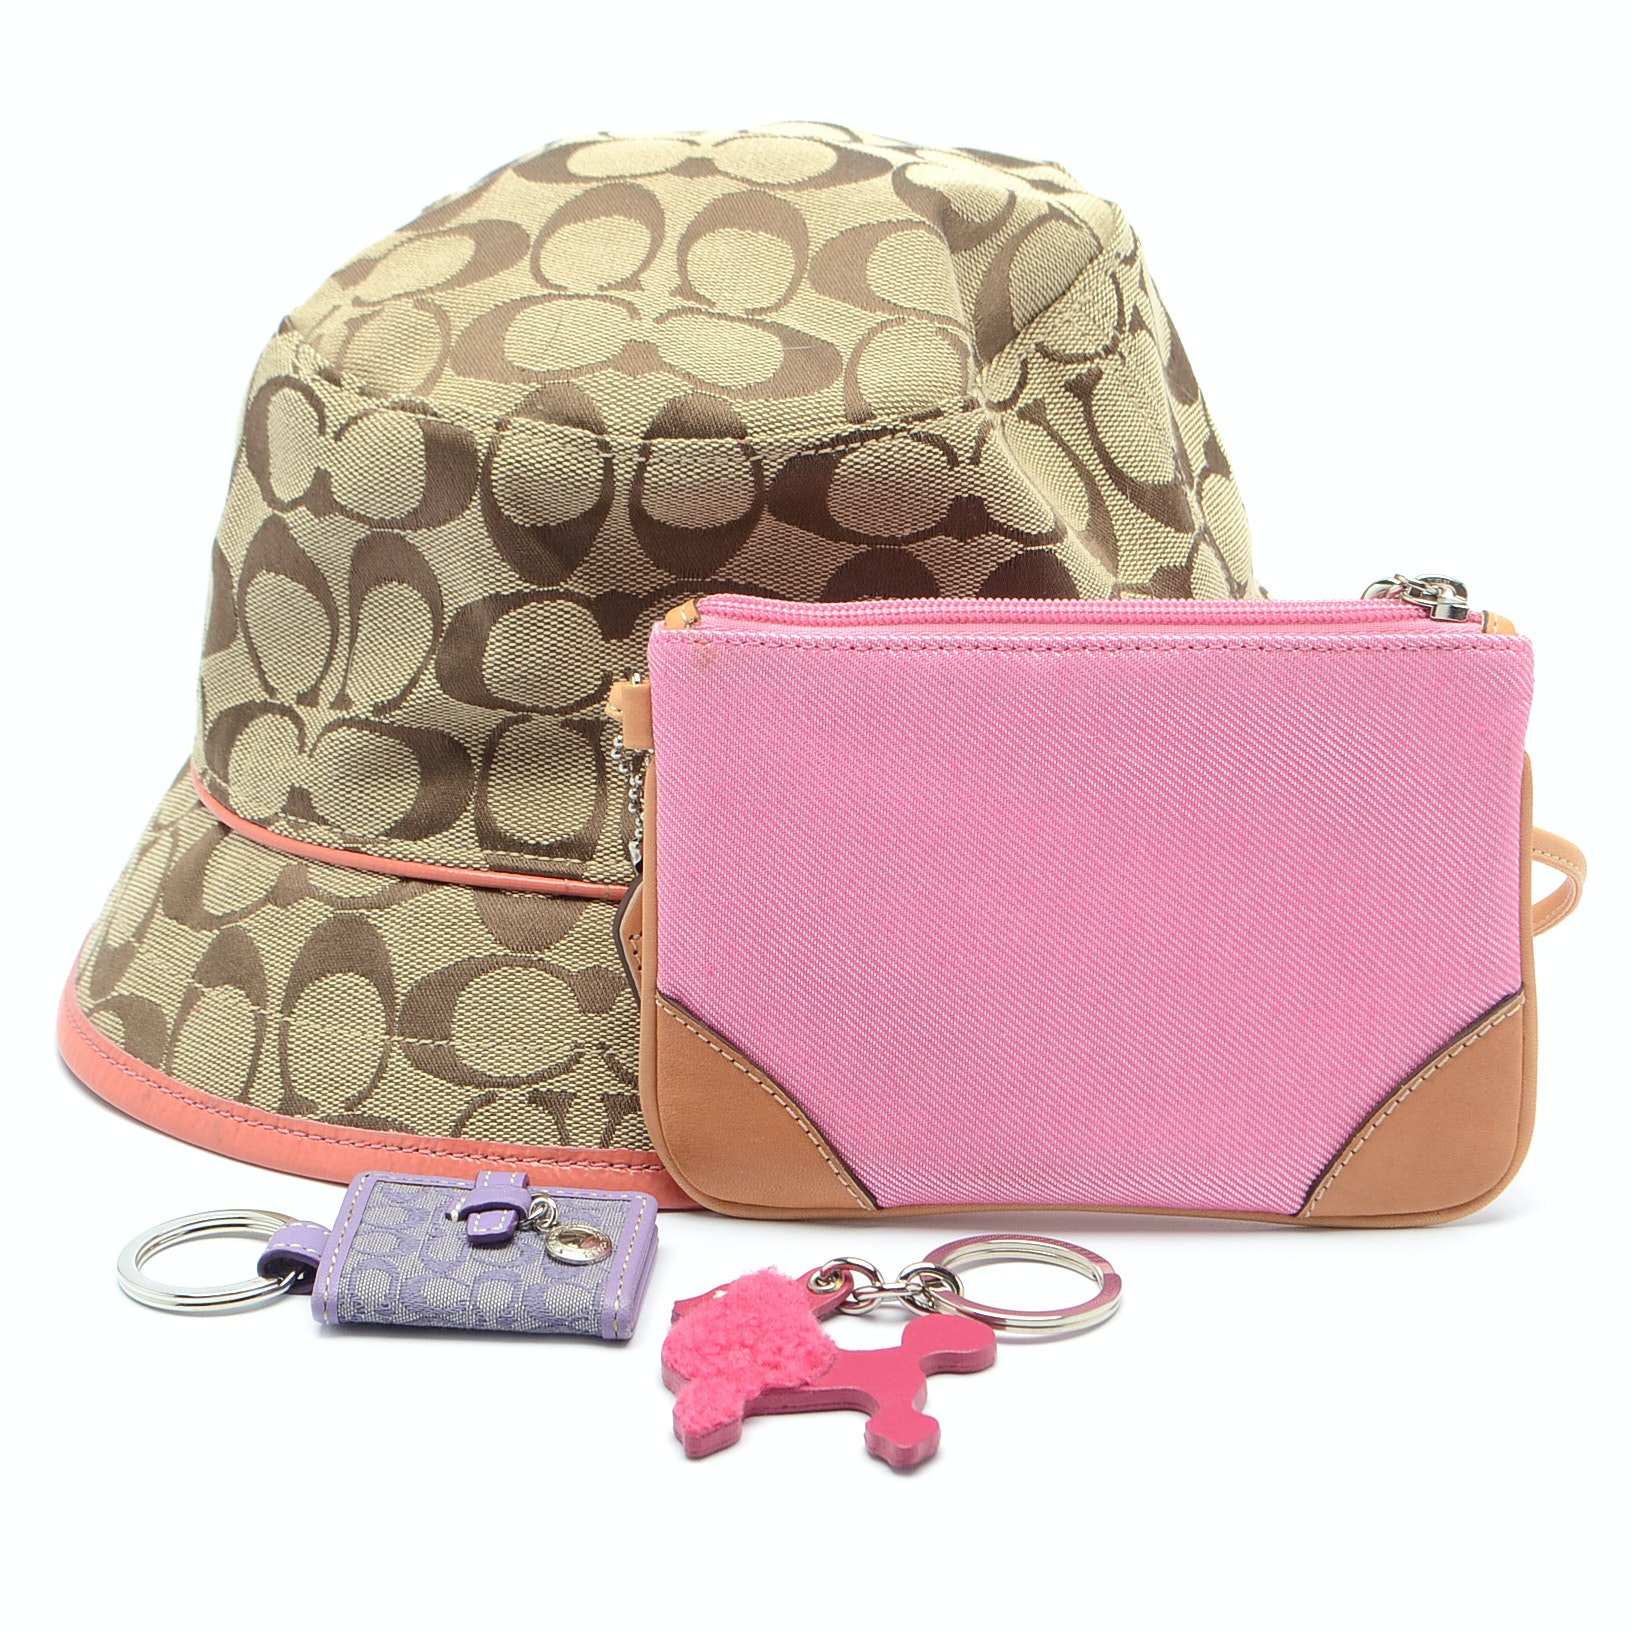 Collection of Coach Accessories